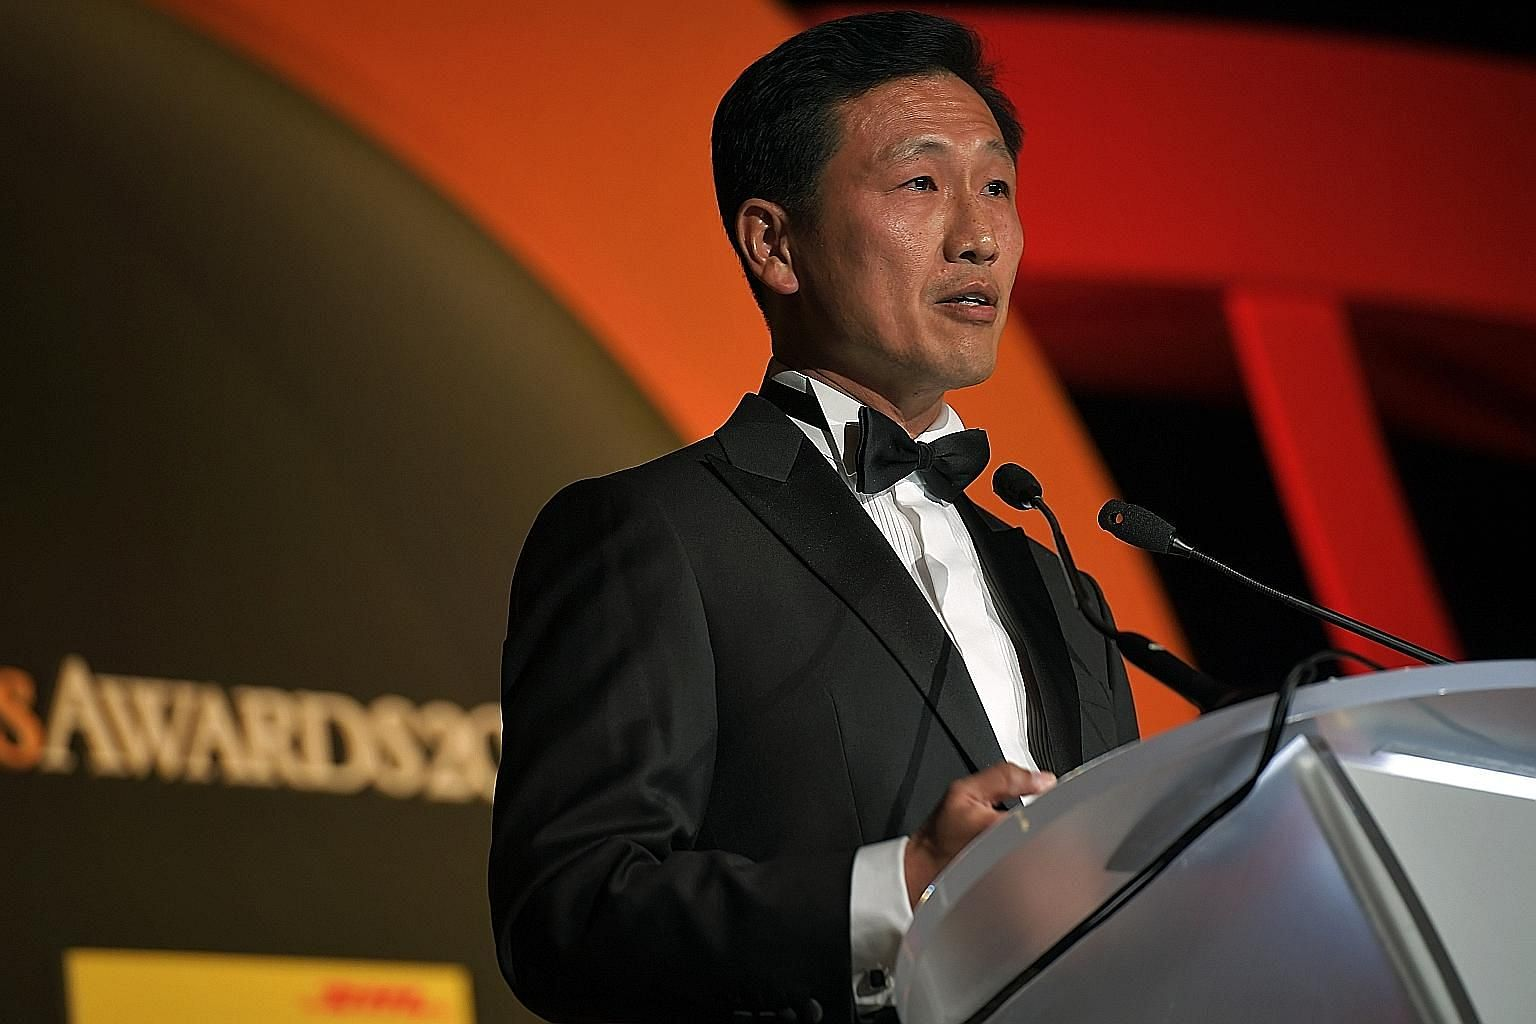 Education Minister (Higher Education and Skills) Ong Ye Kung said Singapore society has to redefine success to encompass self-starters who take risks, suffer setbacks but have the courage to pick themselves up and try again.